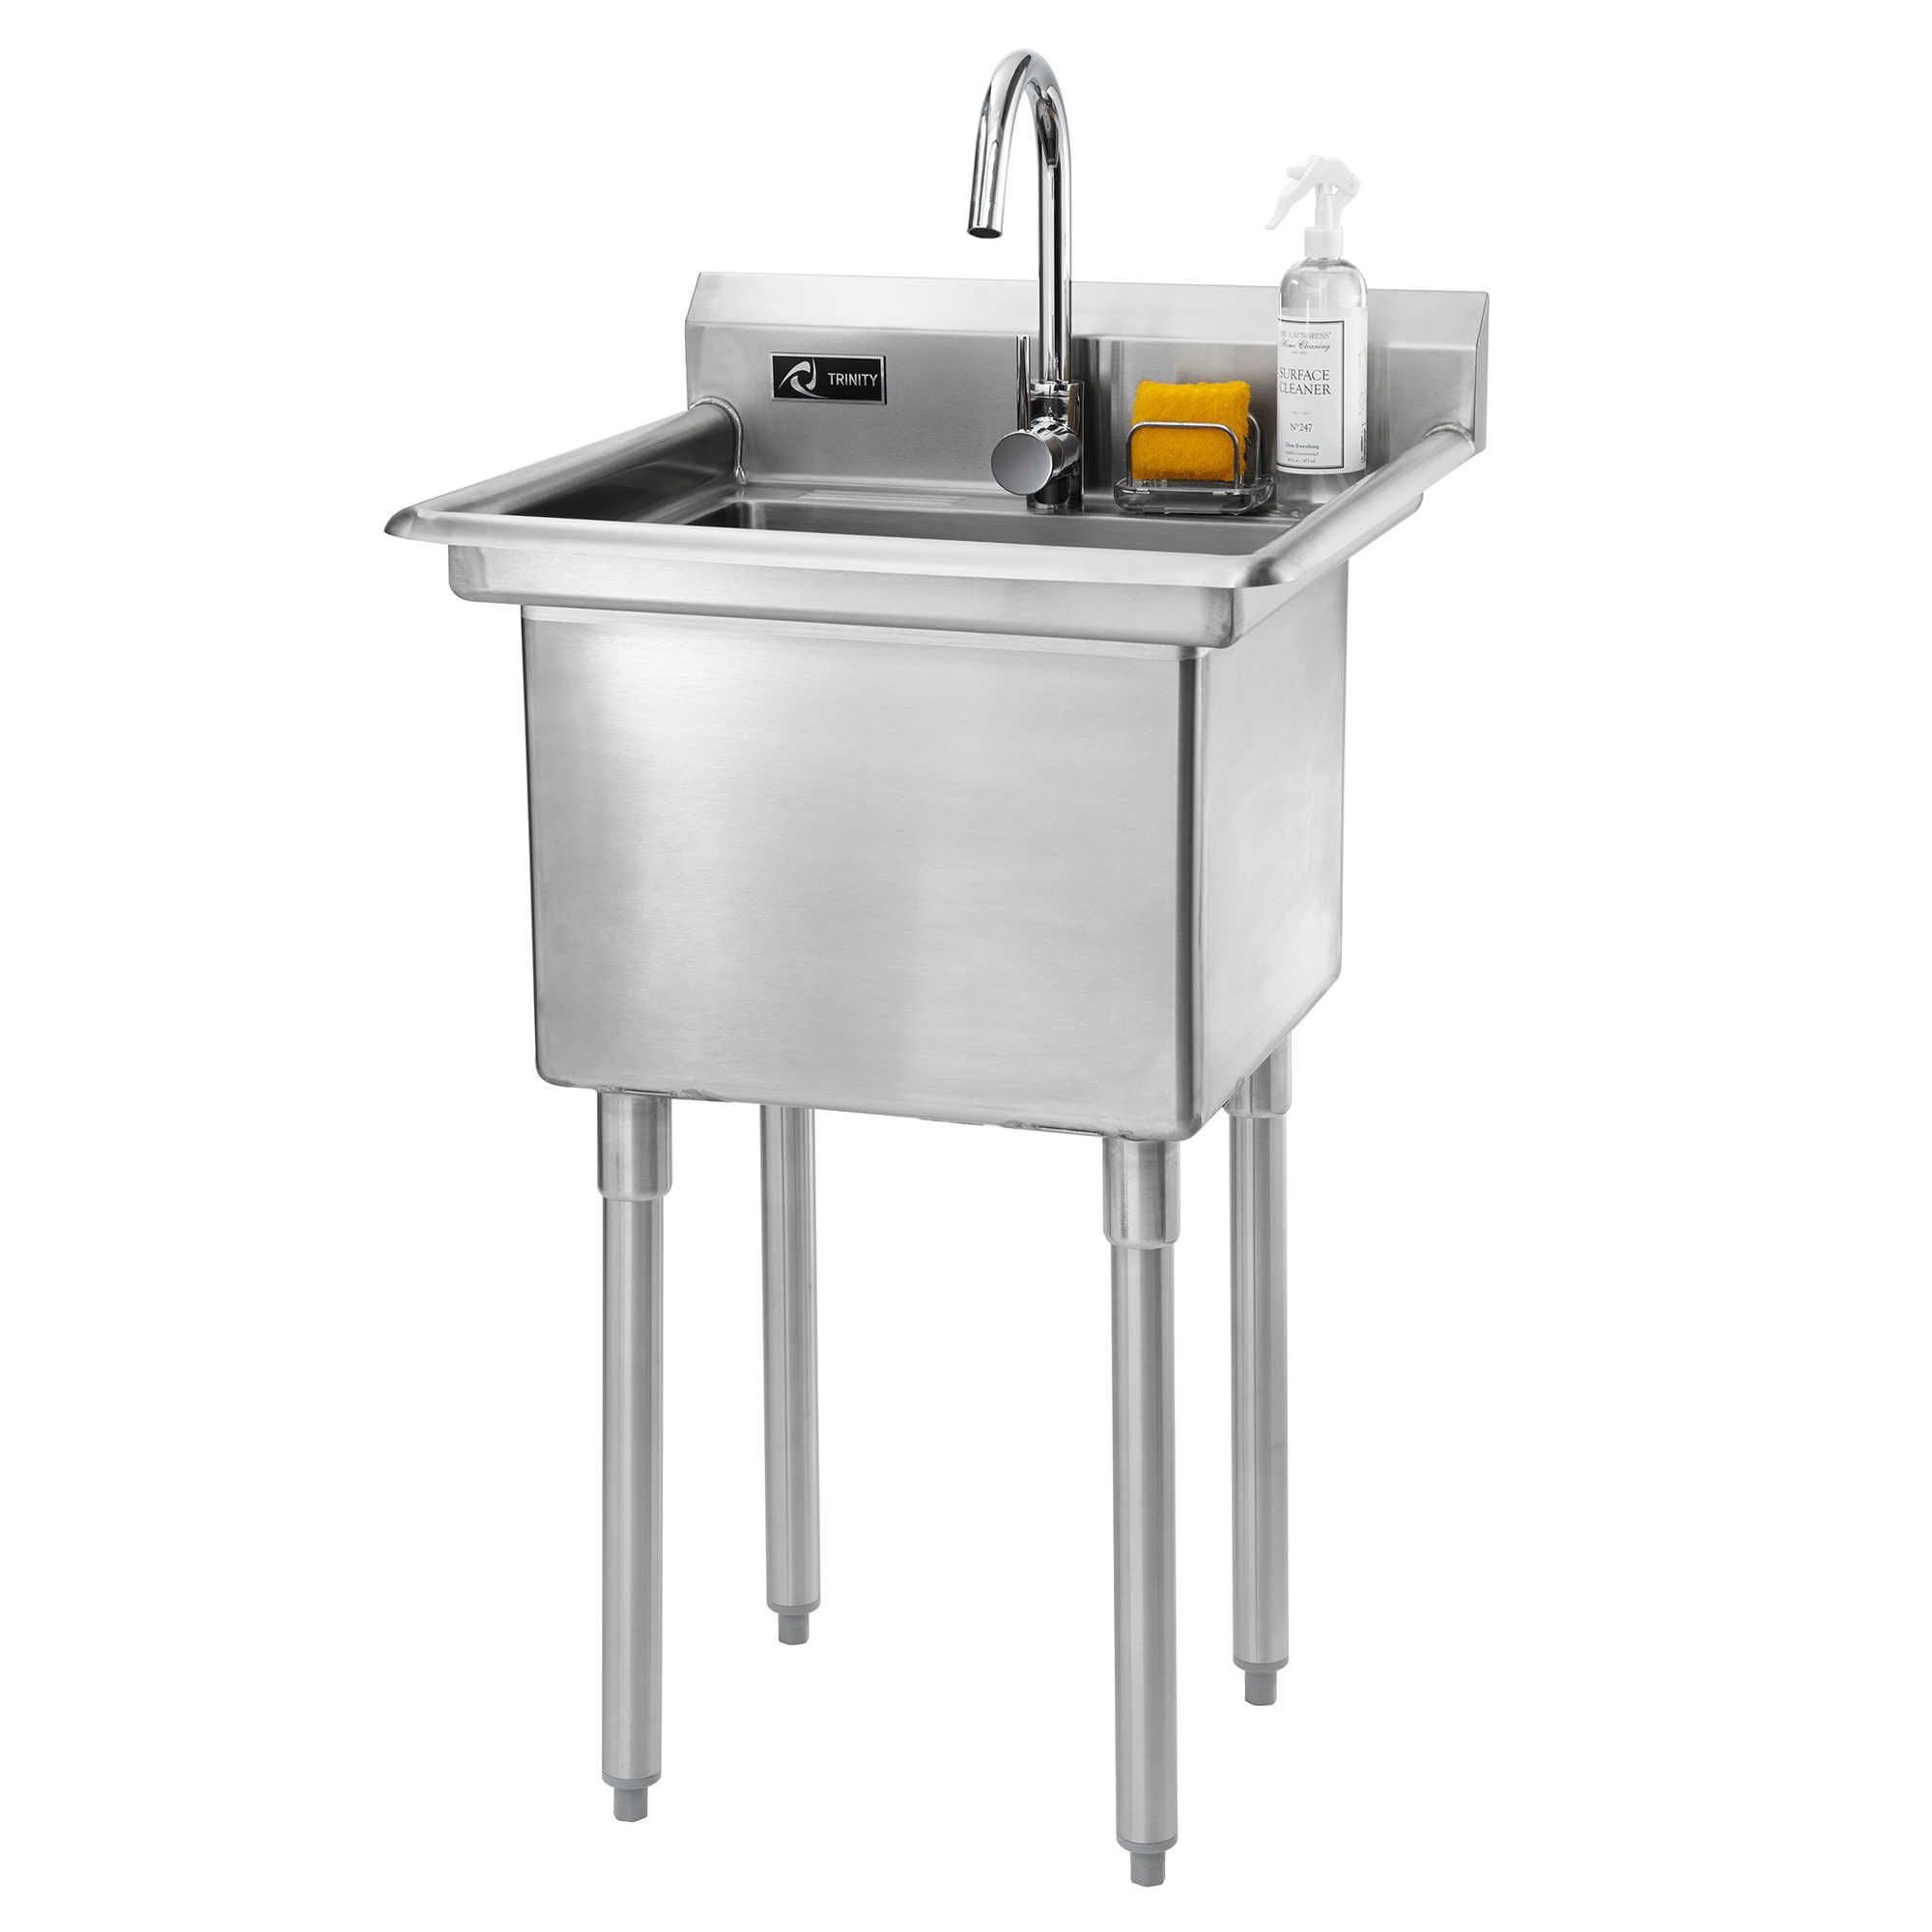 Trinity Tsl 0301 Stainless Steel Utility Sink With Drain And